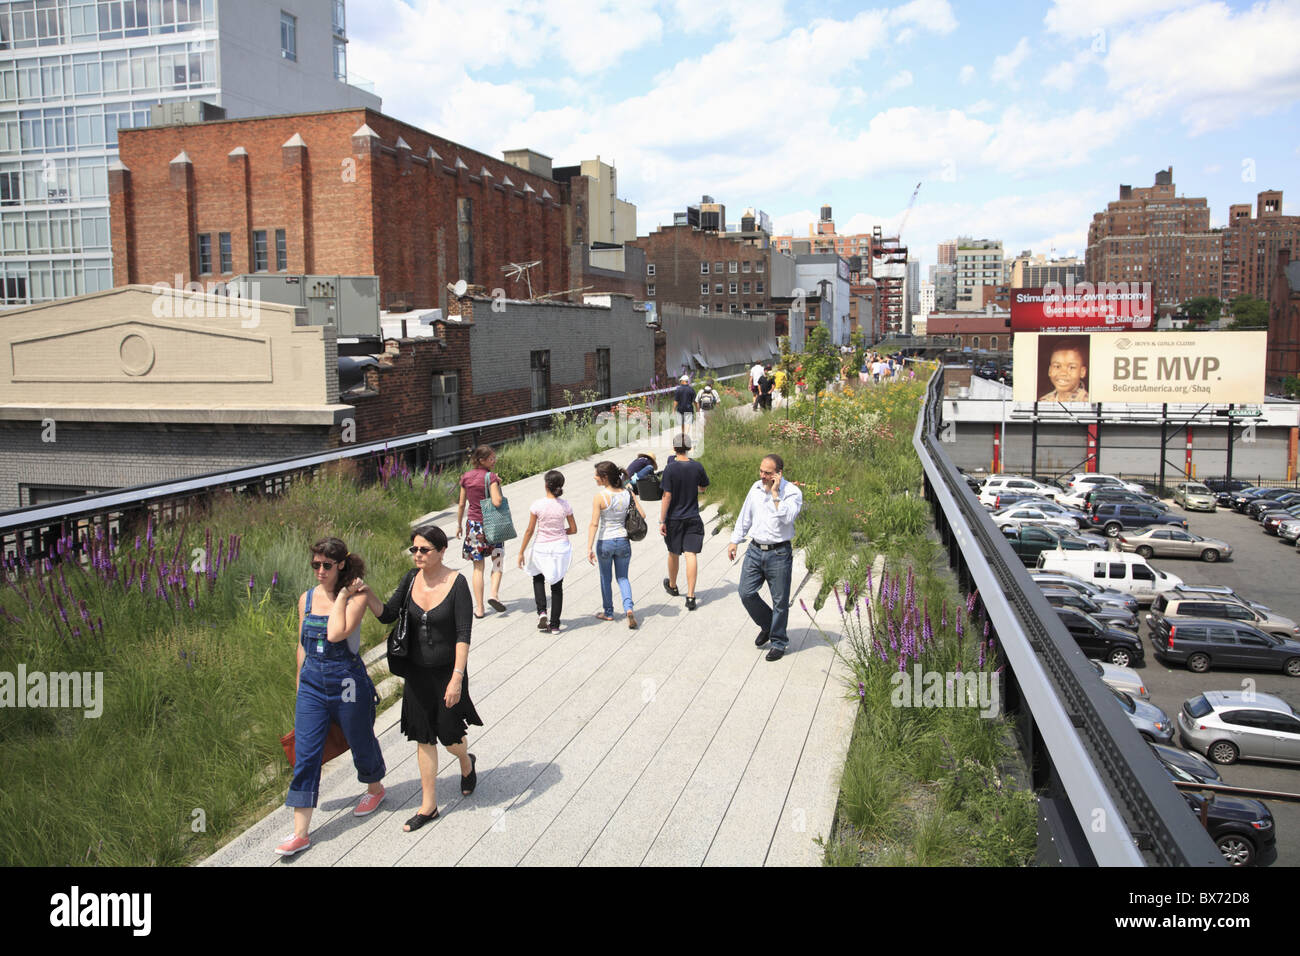 High Line, elevated public park on former rail tracks, Manhattan, New York City, United States of America, North - Stock Image